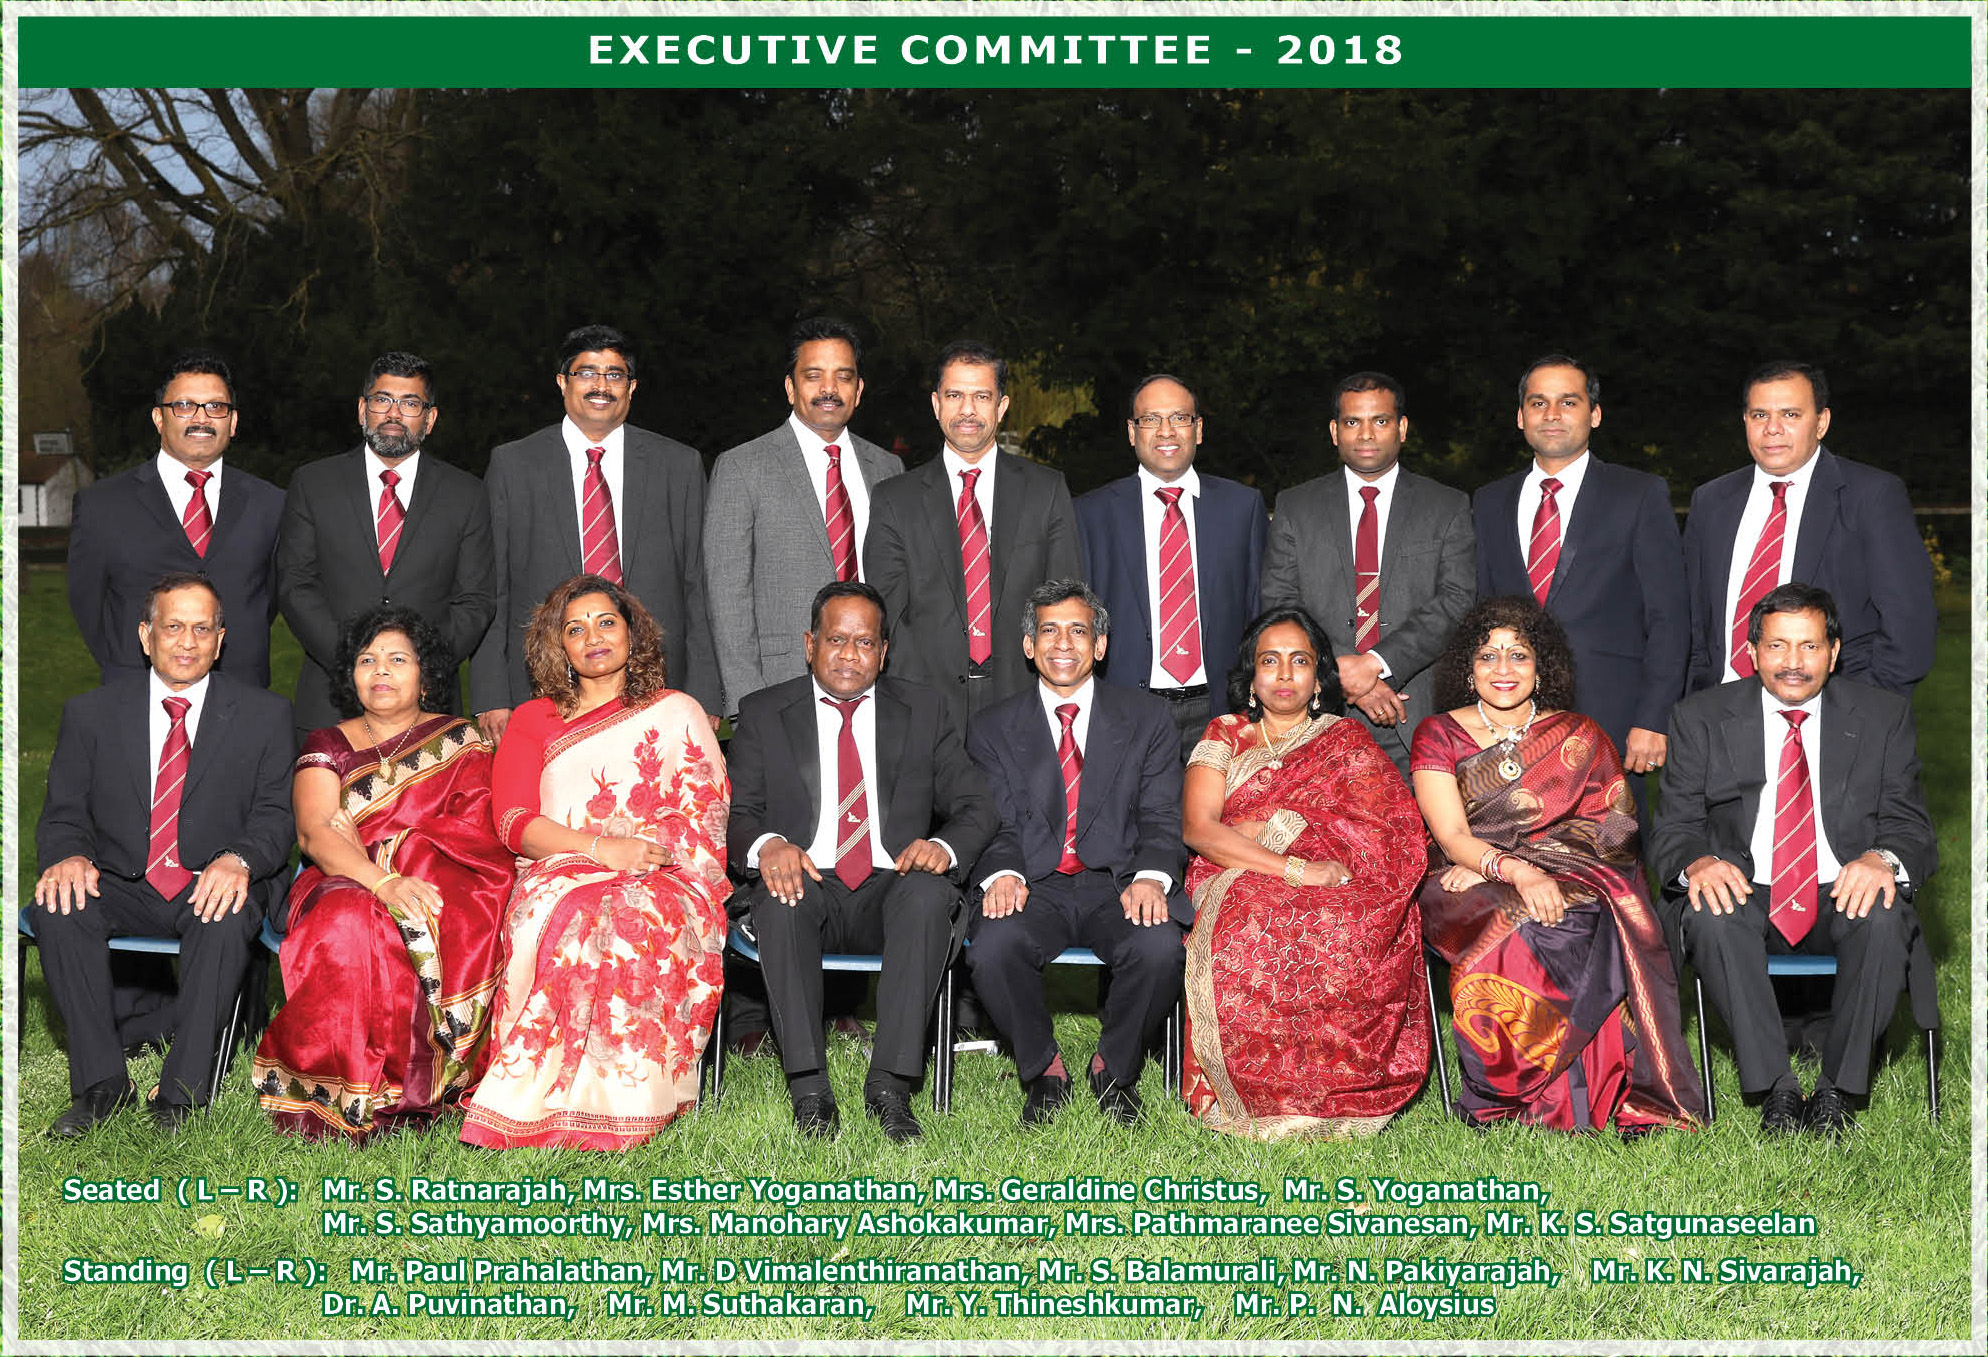 Executive Committee Memebers 2018